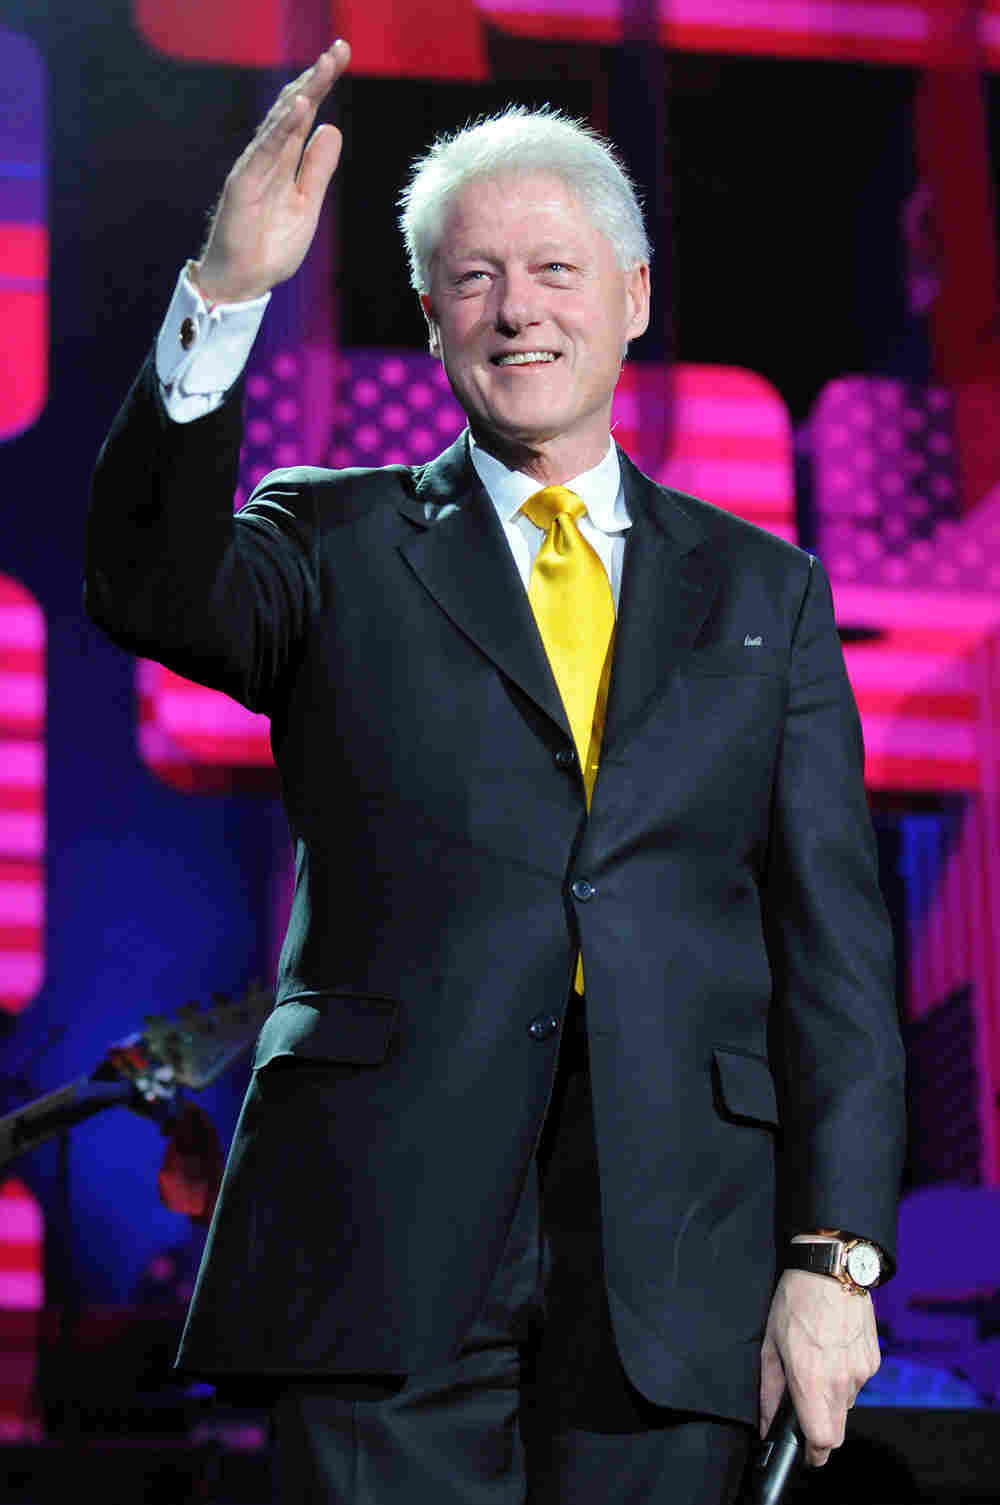 Bill Clinton, who had heart bypass surgery in 2004, was hospitalized in New York City.